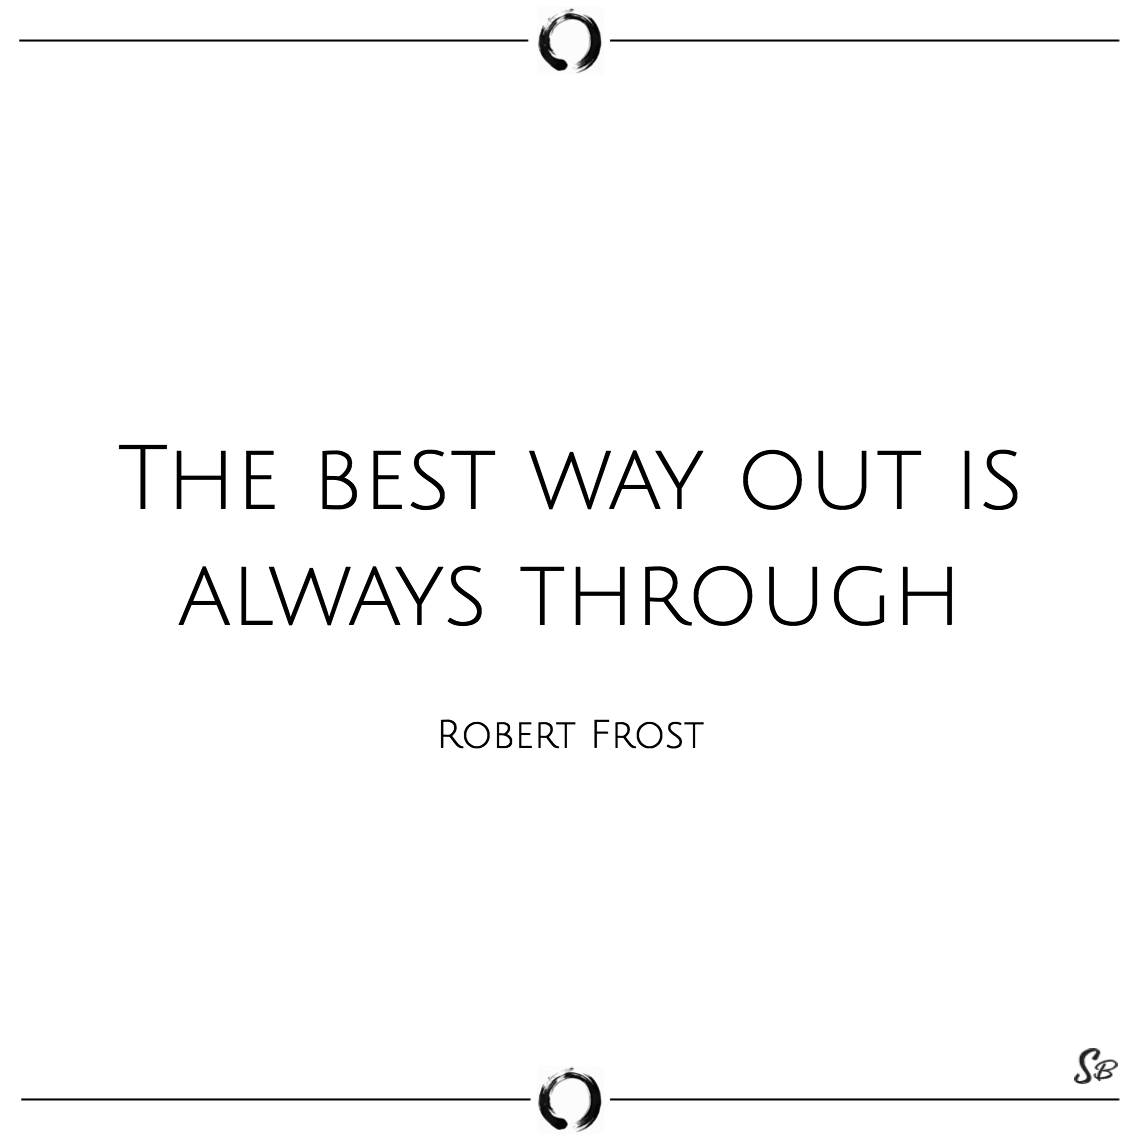 The best way out is always through robert frost